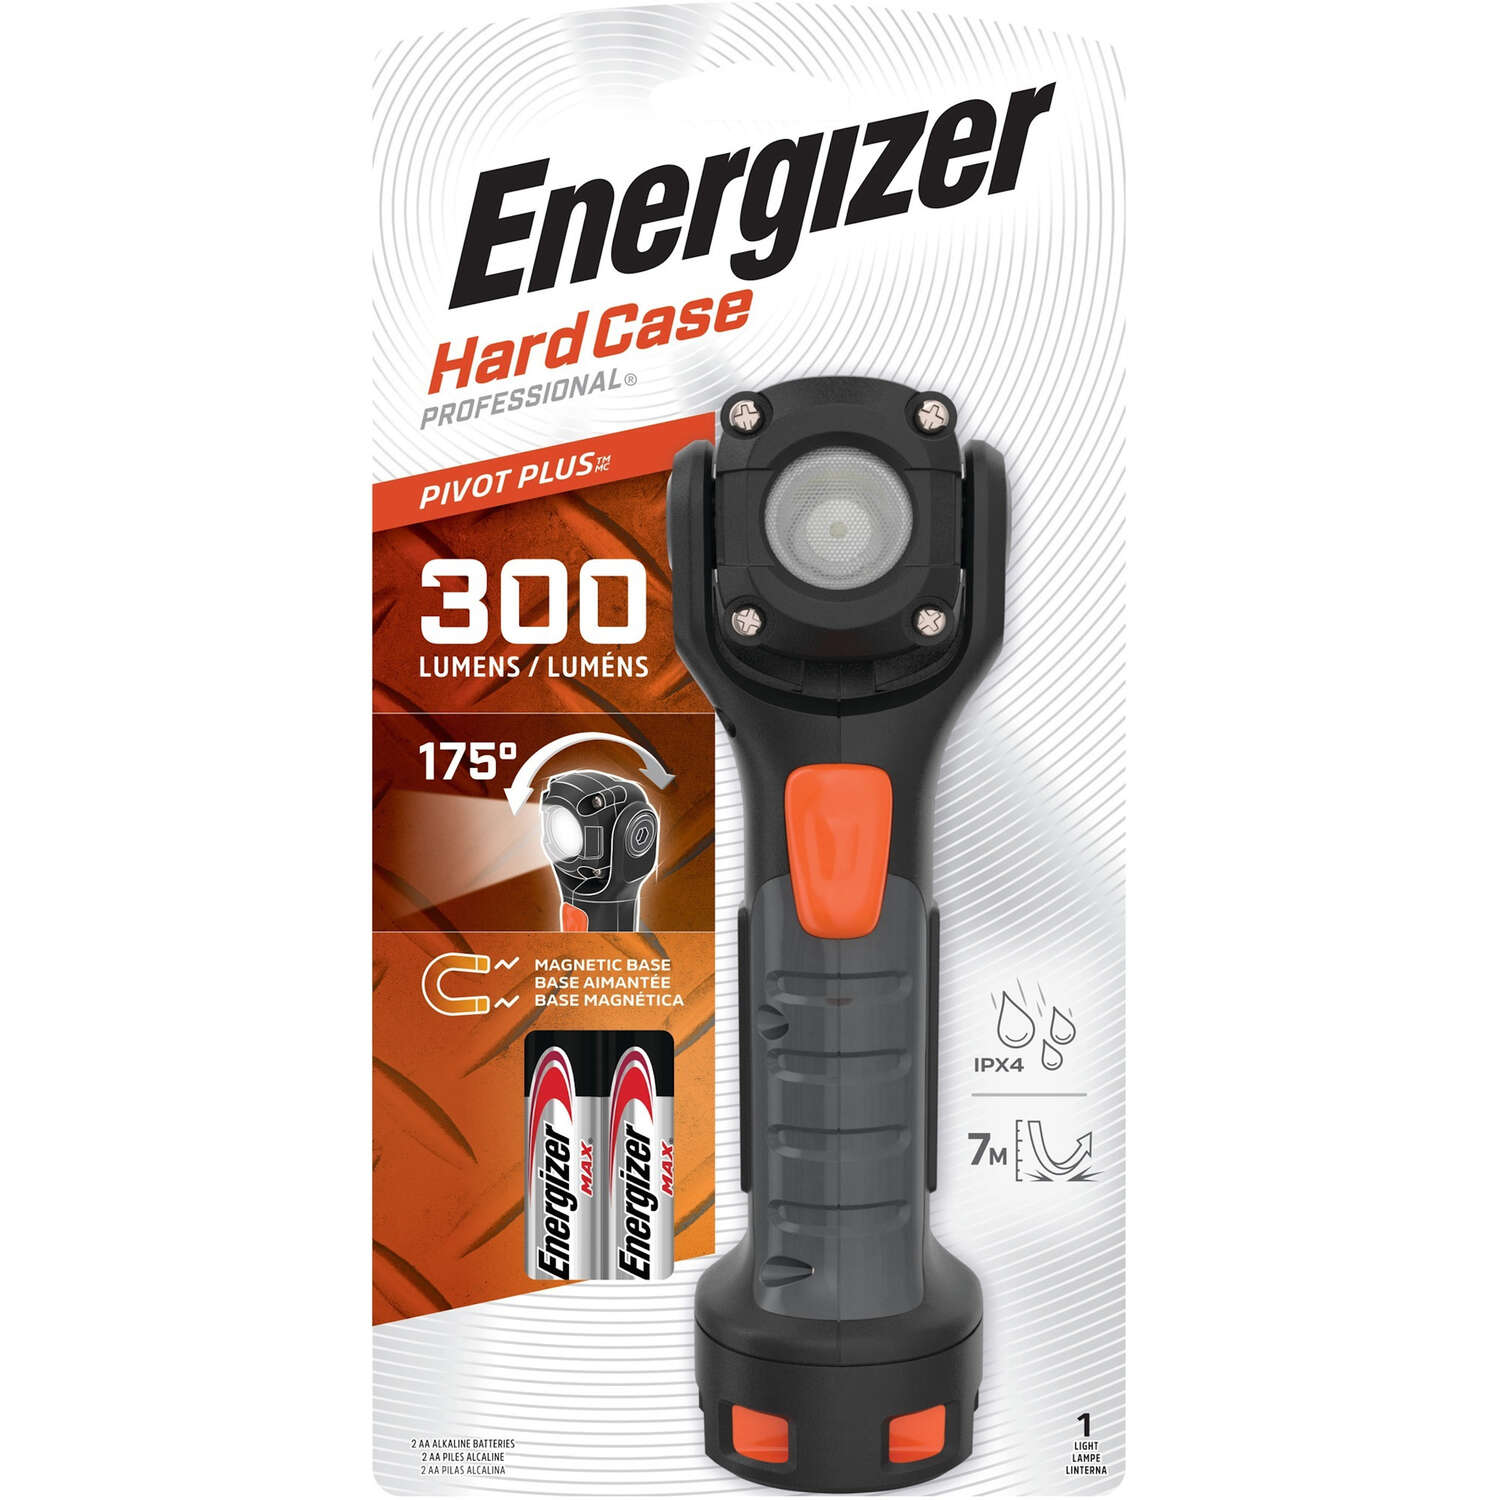 Energizer  HardCase  300 lumens Black  LED  Flashlight  AA